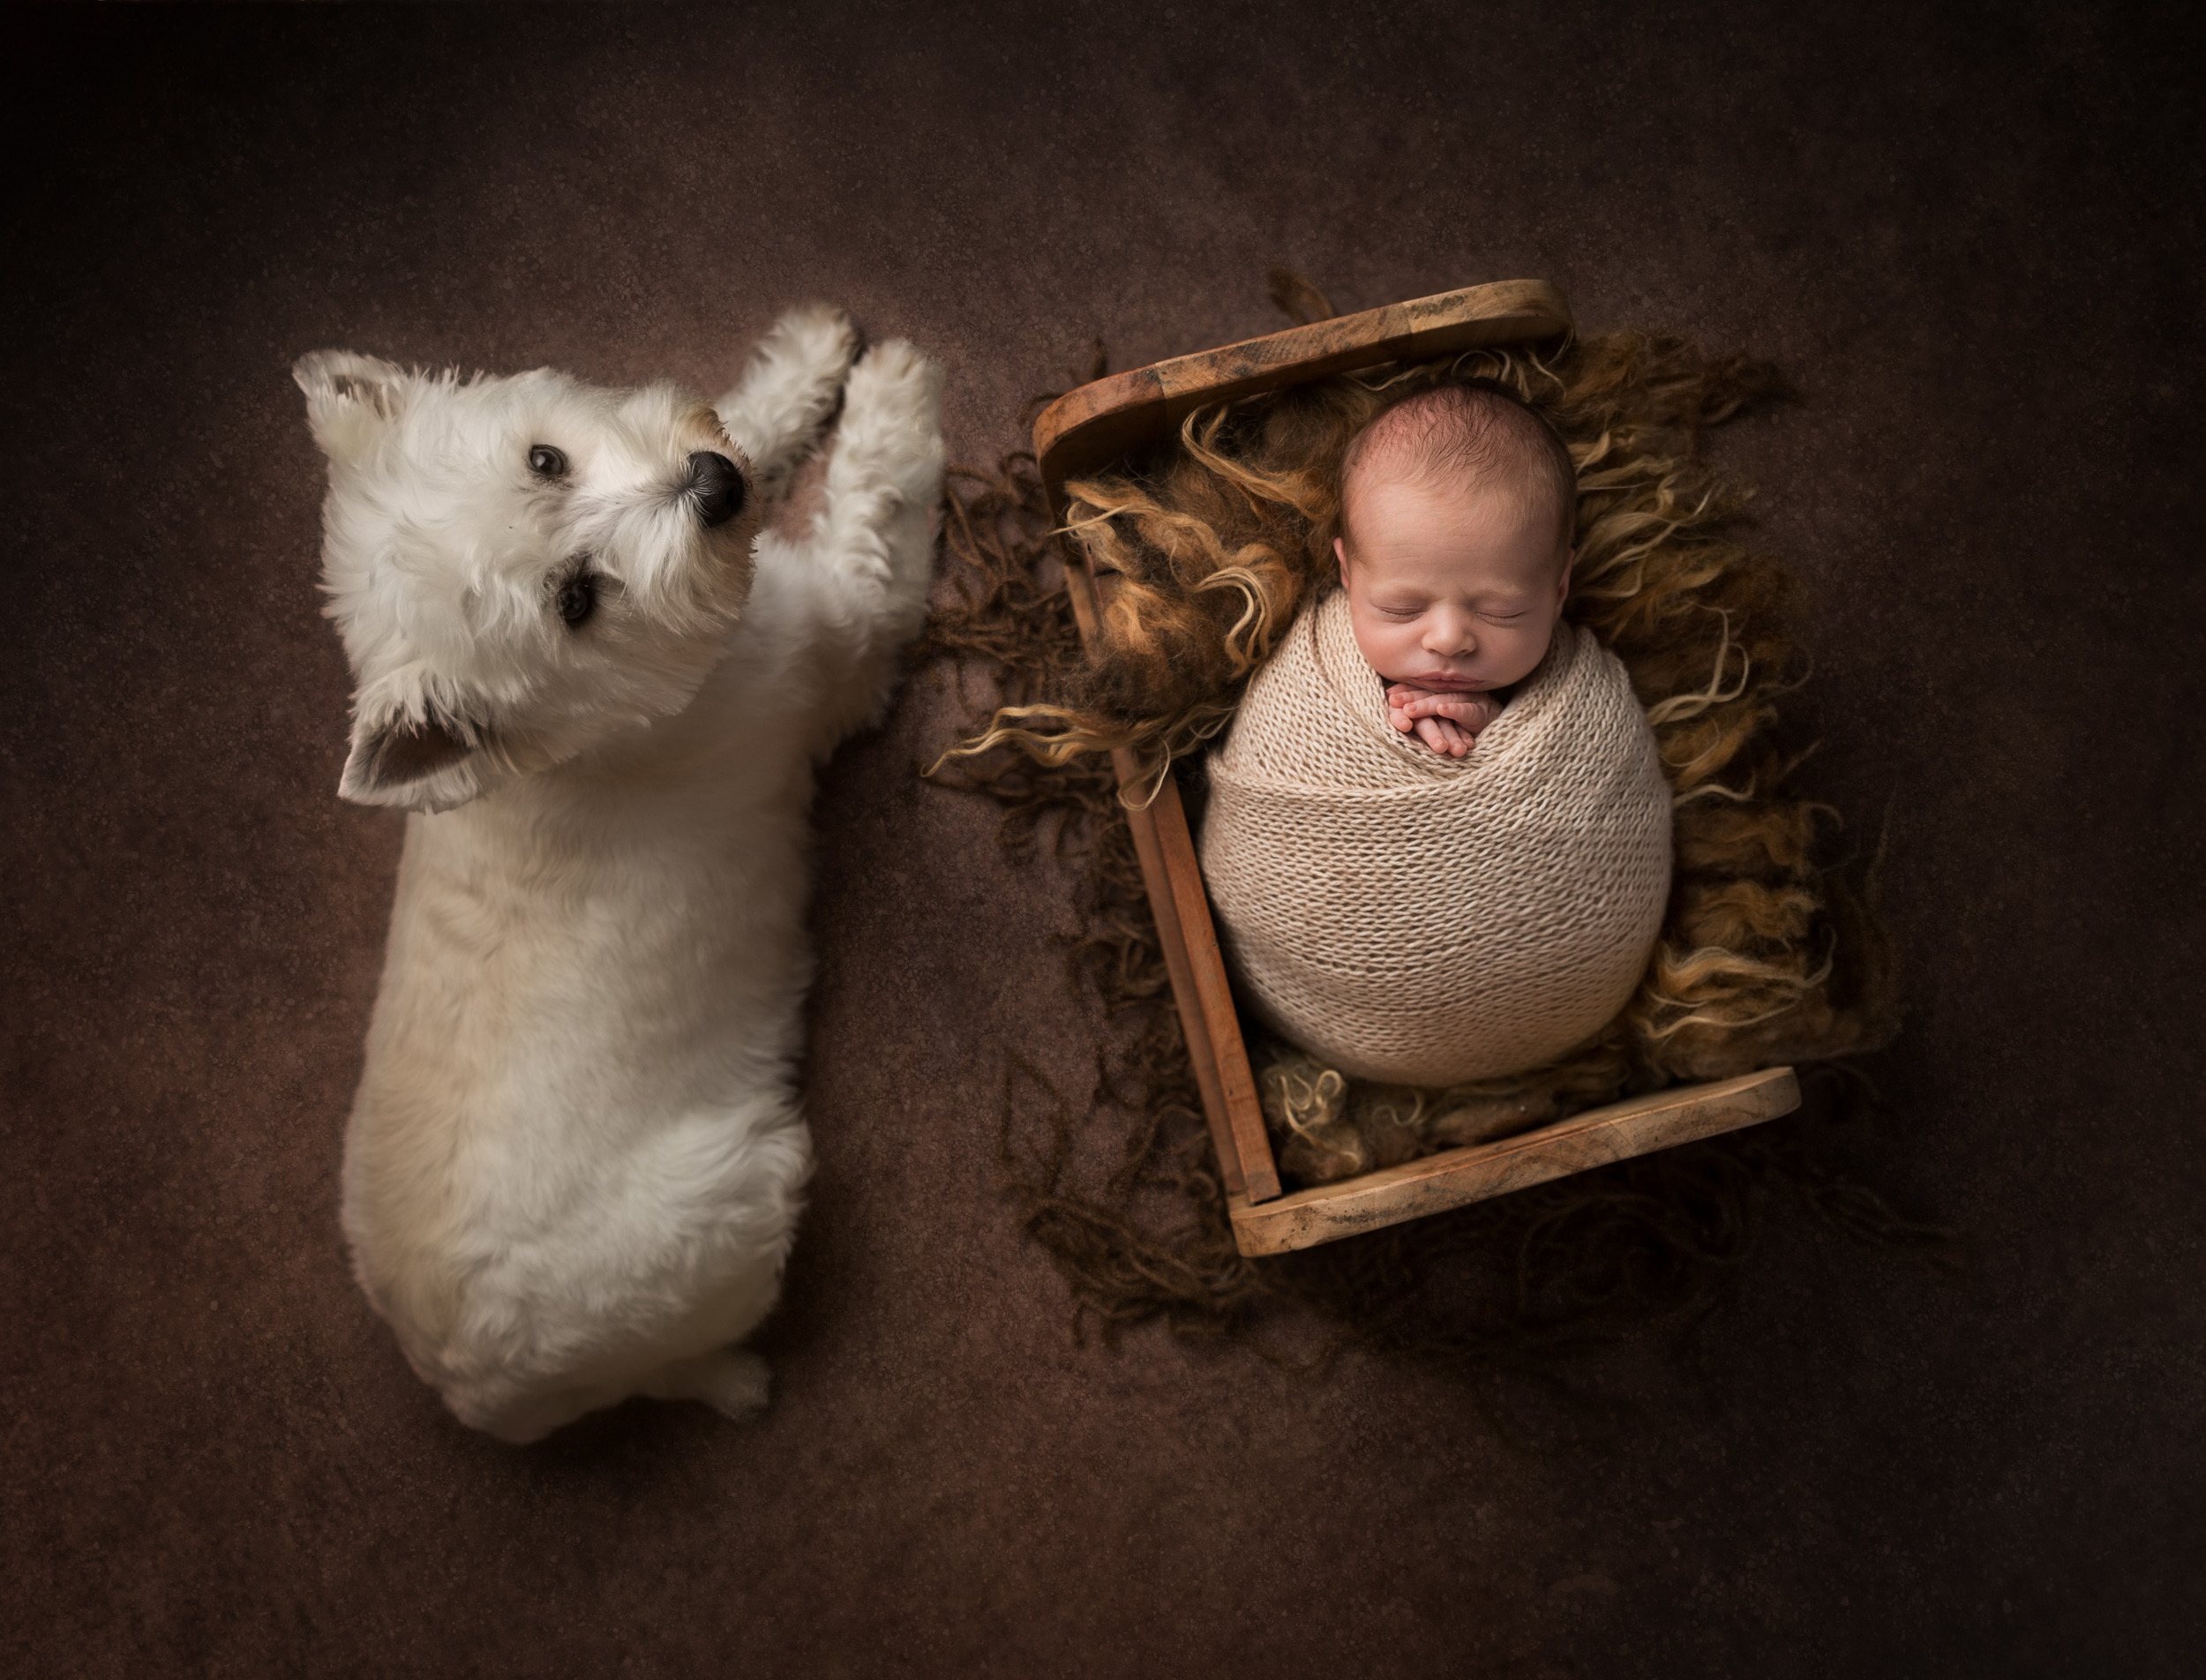 A newborn in a little bed next to his pet dog by Cheshire newborn photographer in Sandbach